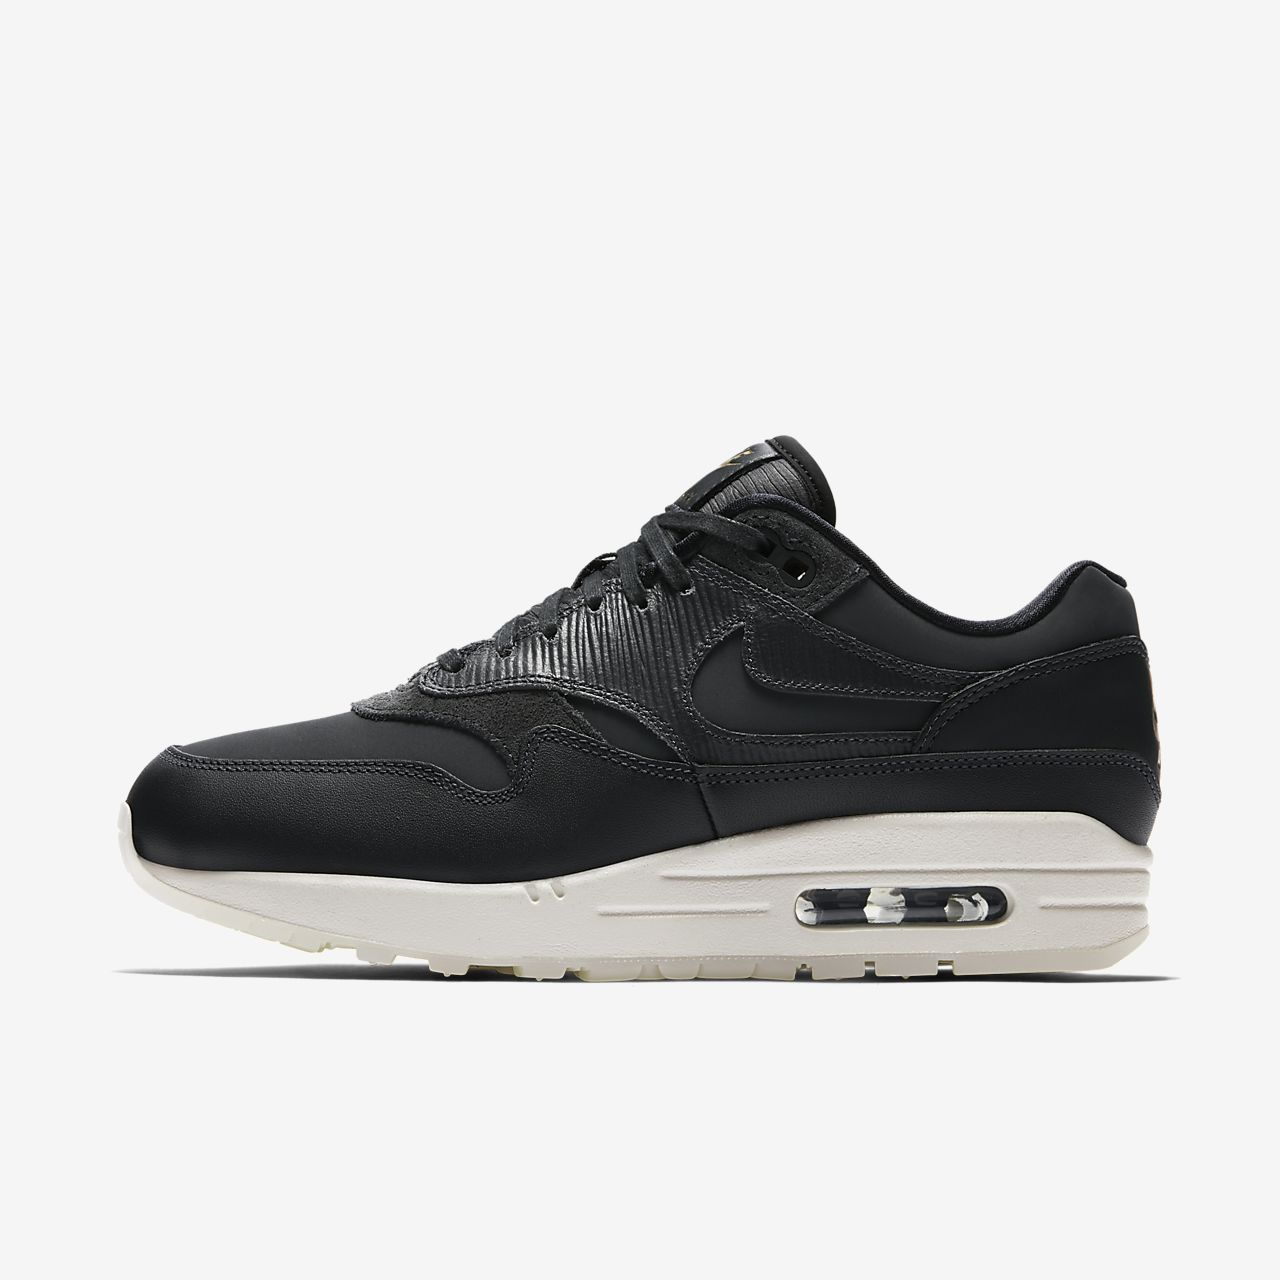 air max 1 black gum sole nz